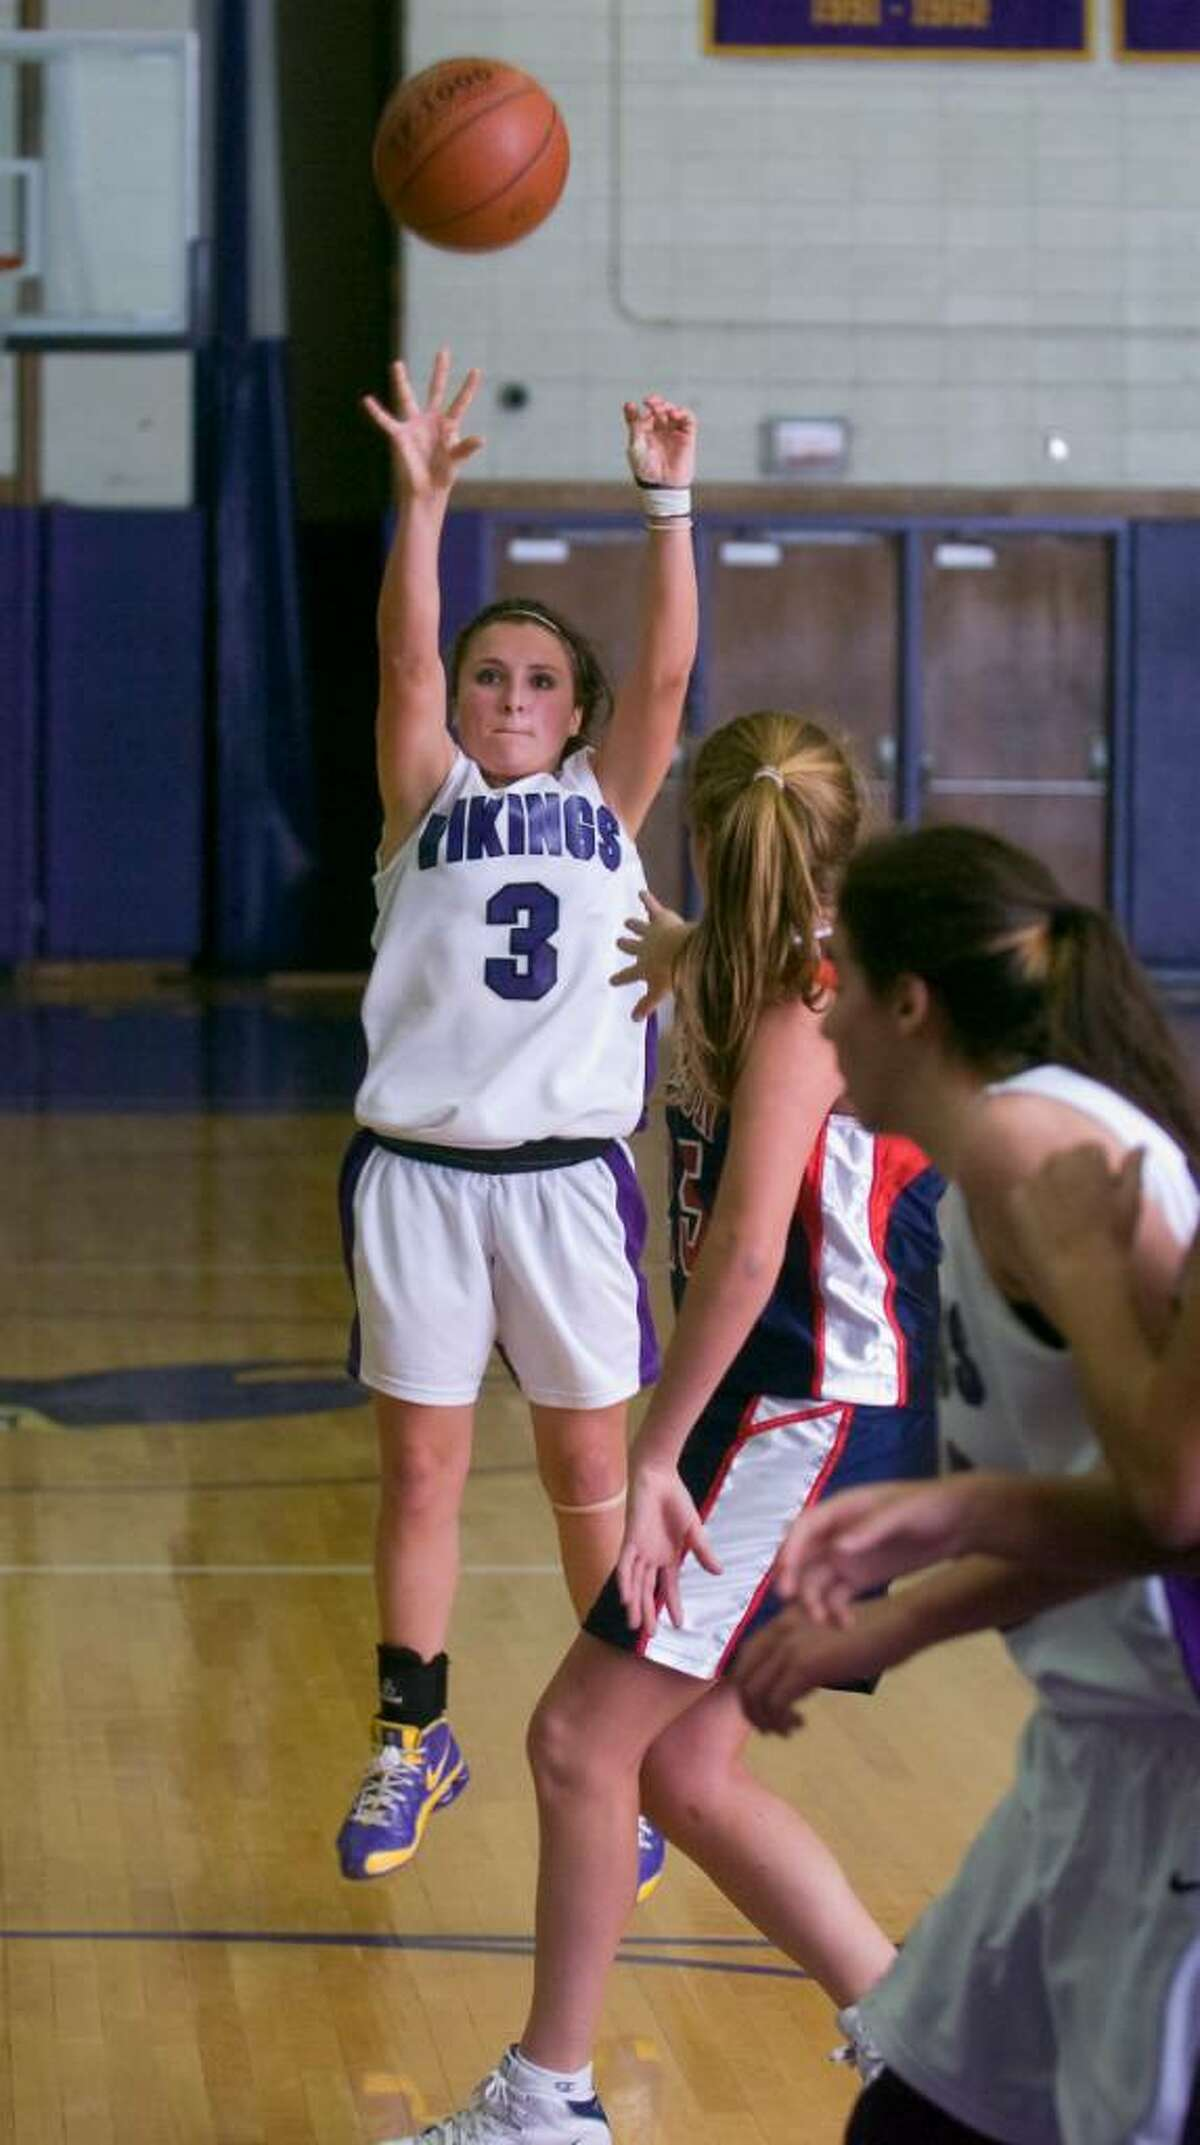 Westhill's Allyson Souza shoots during an FCIAC girls basketball game at Westhill High School in Stamford, Conn. on Tuesday, Jan. 26, 2010